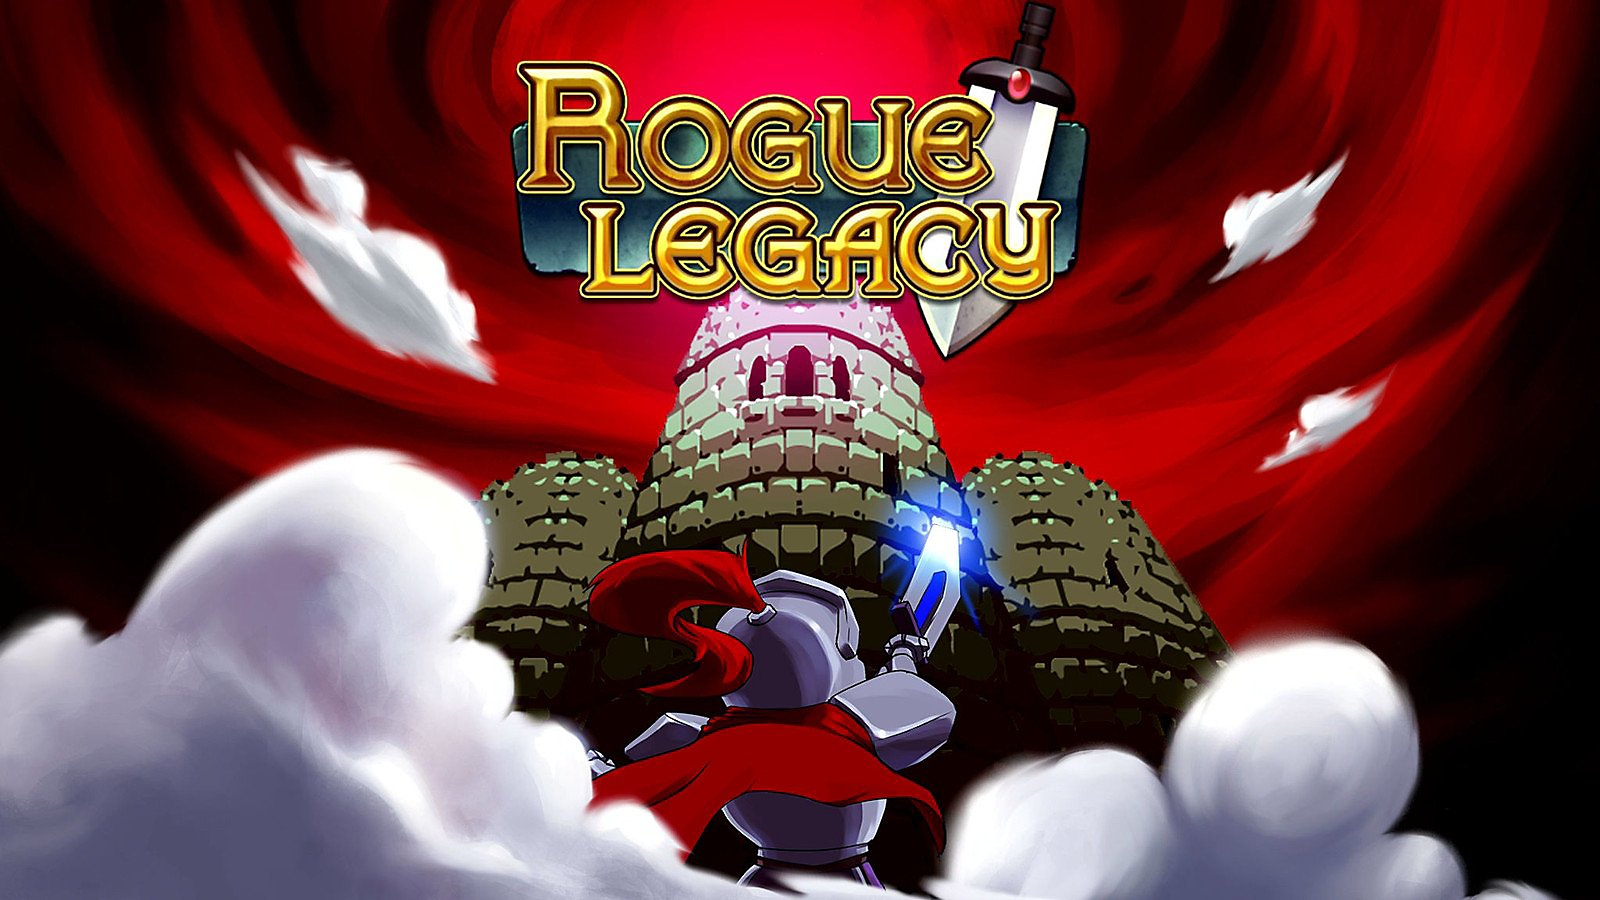 Rogue Legacy иконографско изображение